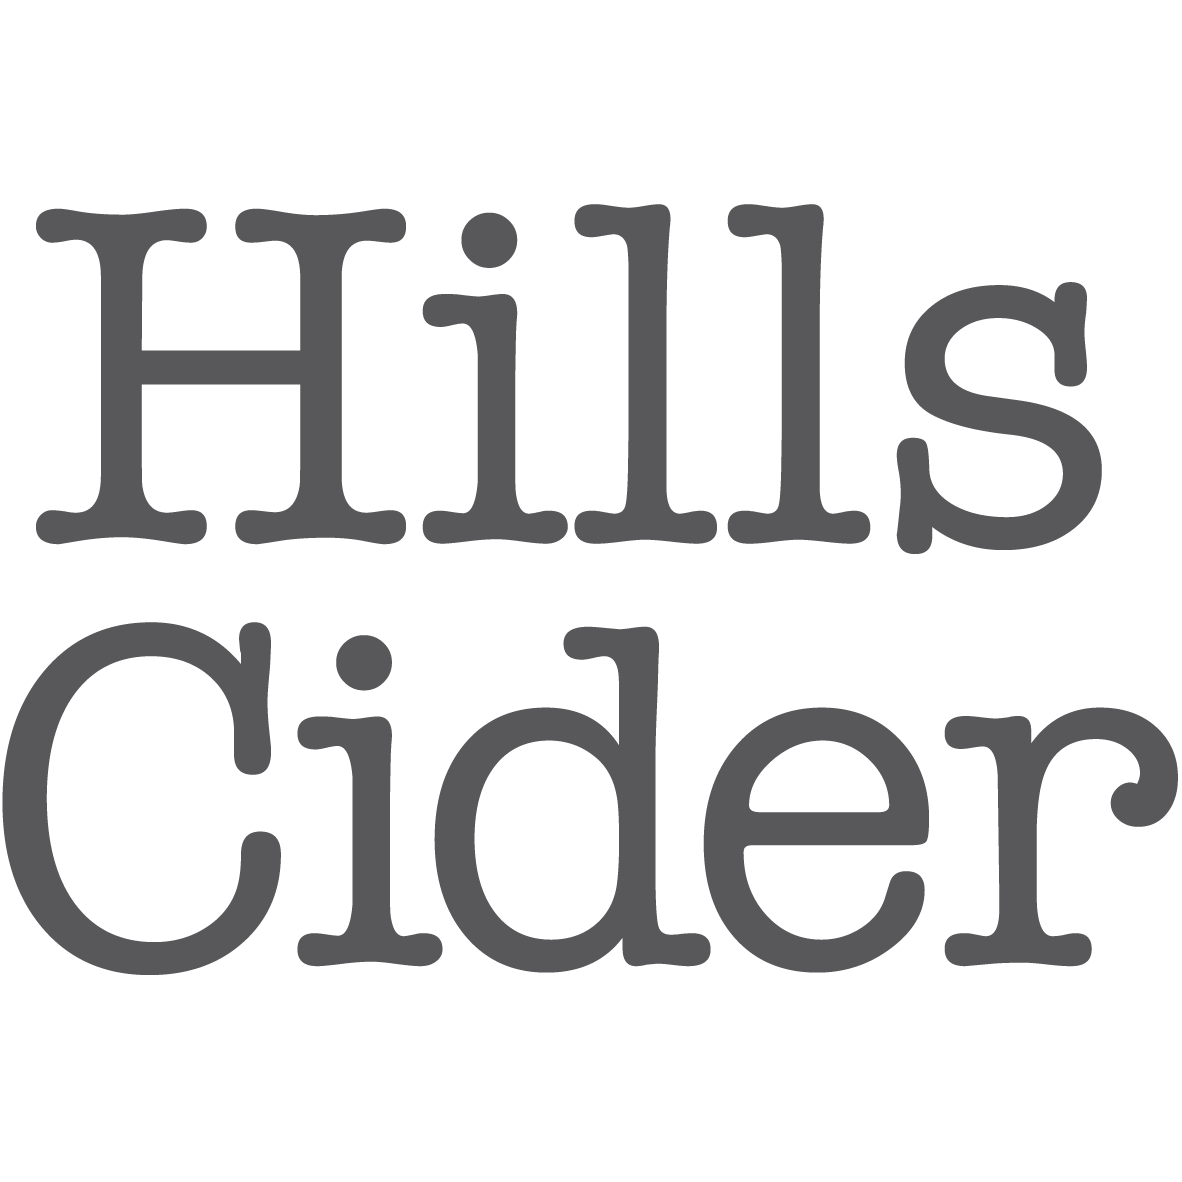 The Hills Cider Company